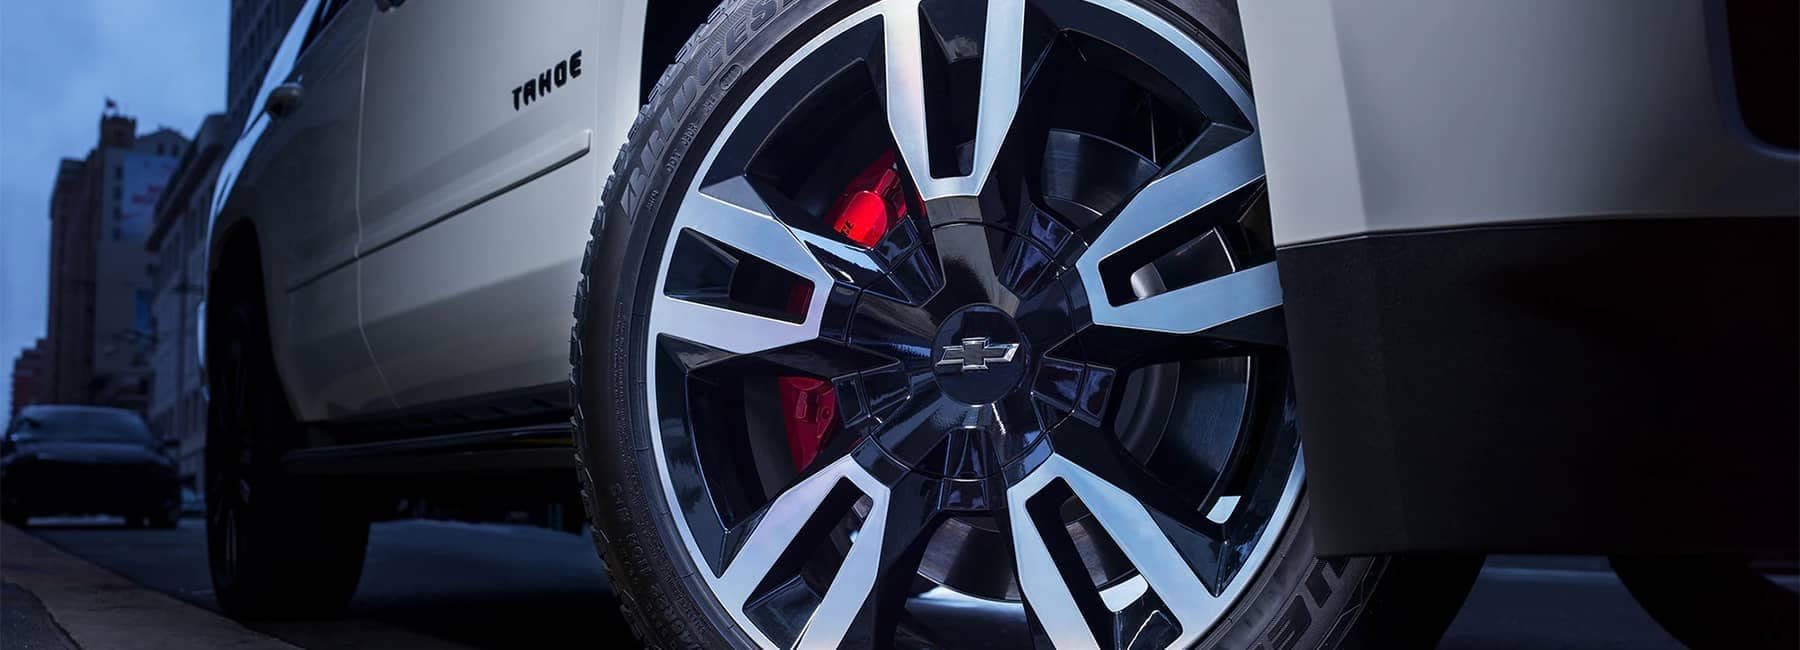 2020 Chevrolet Tahoe Full-Size SUV RST Edition wheels